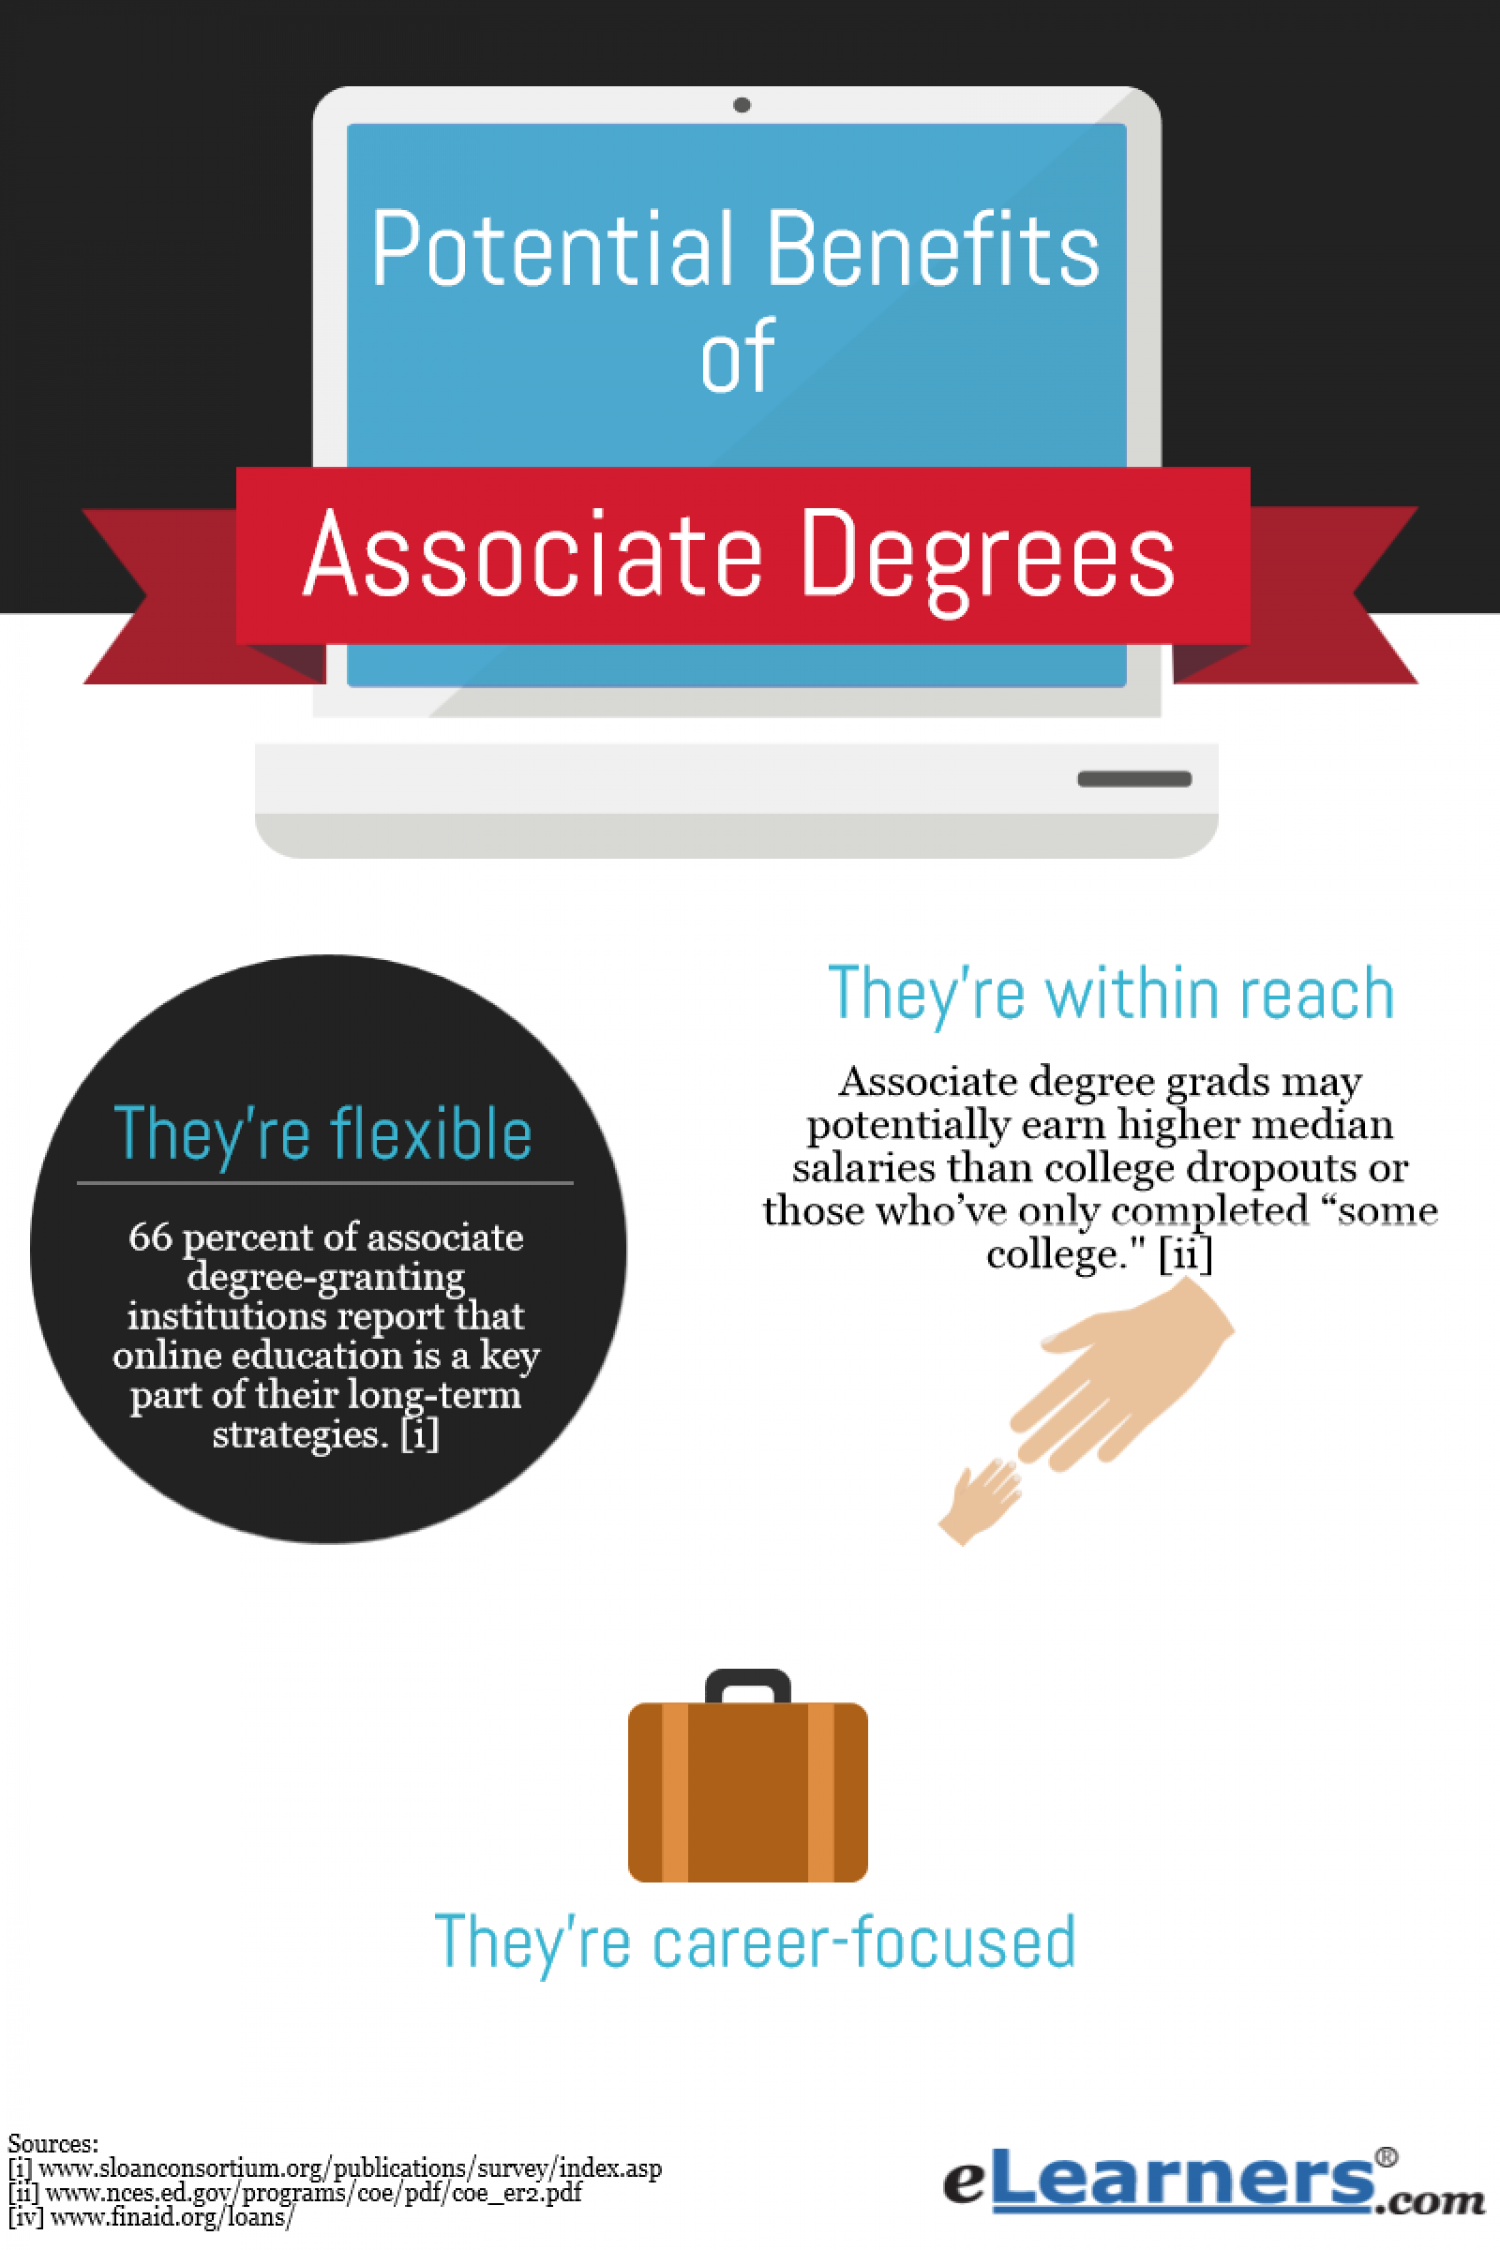 Advantages of Associate Degrees Infographic